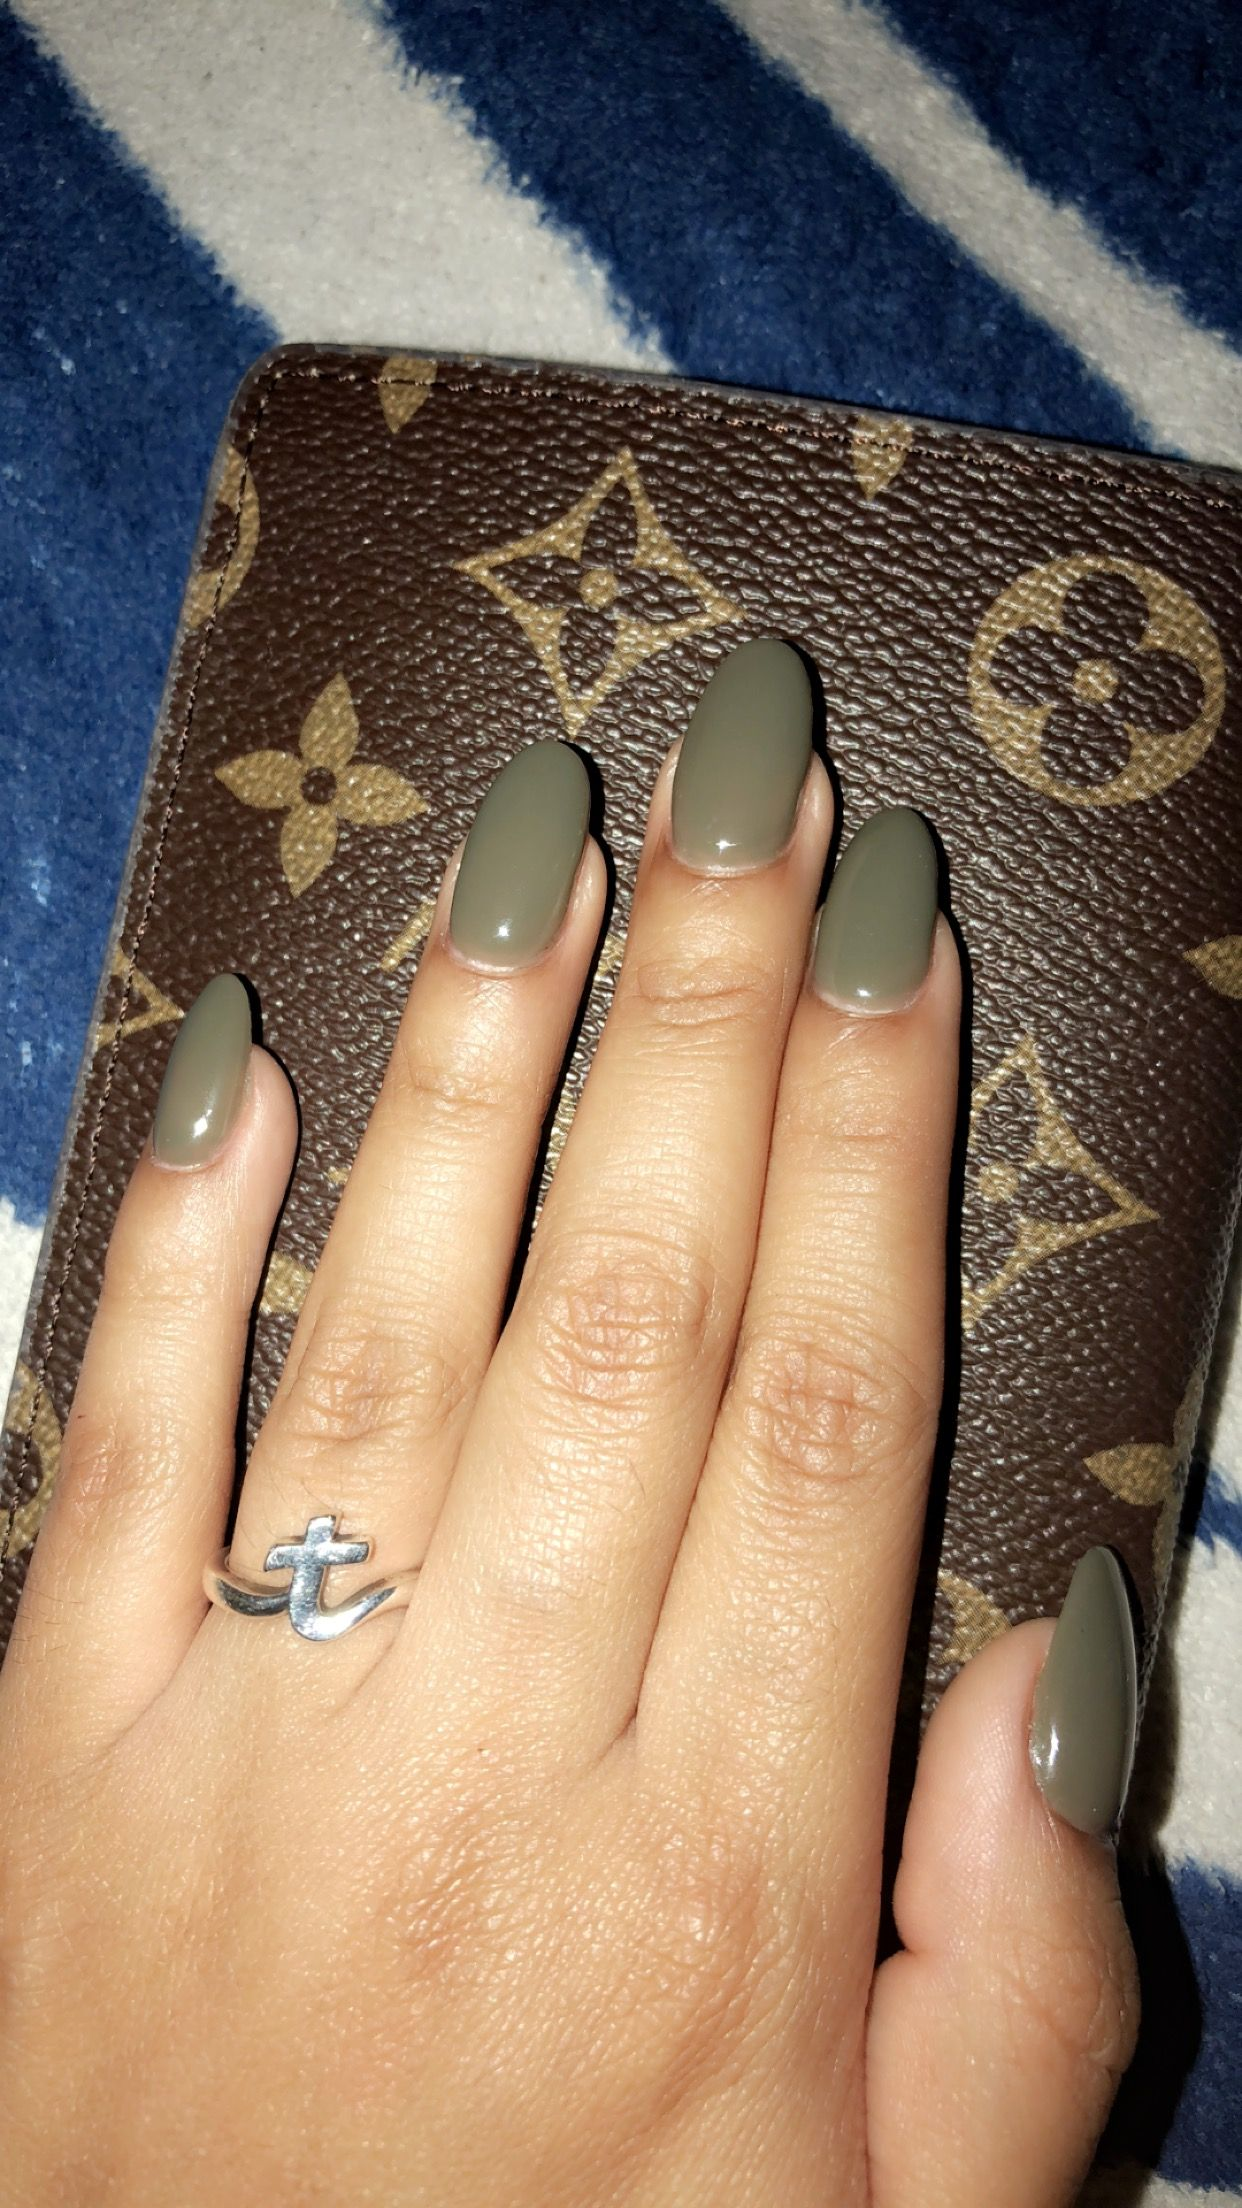 Olive Green Almond Shaped Acrylics Green Acrylic Nails Olive Nails Acrylic Nail Shapes